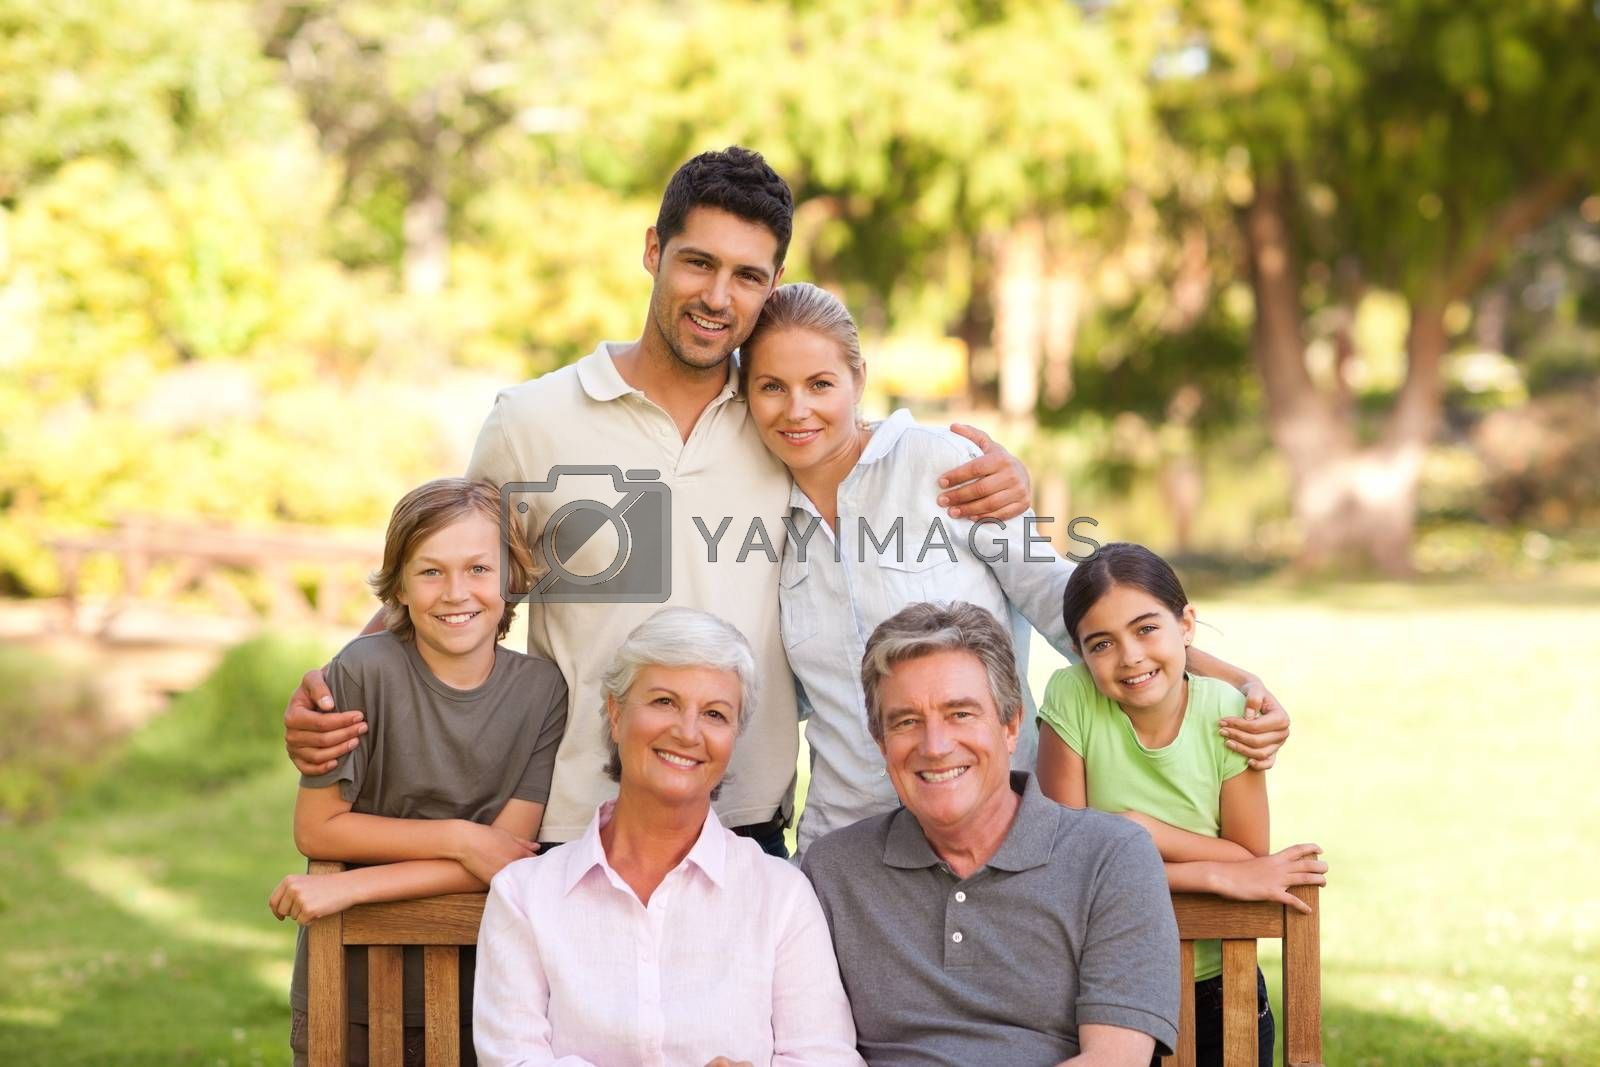 Family in the park during the summer